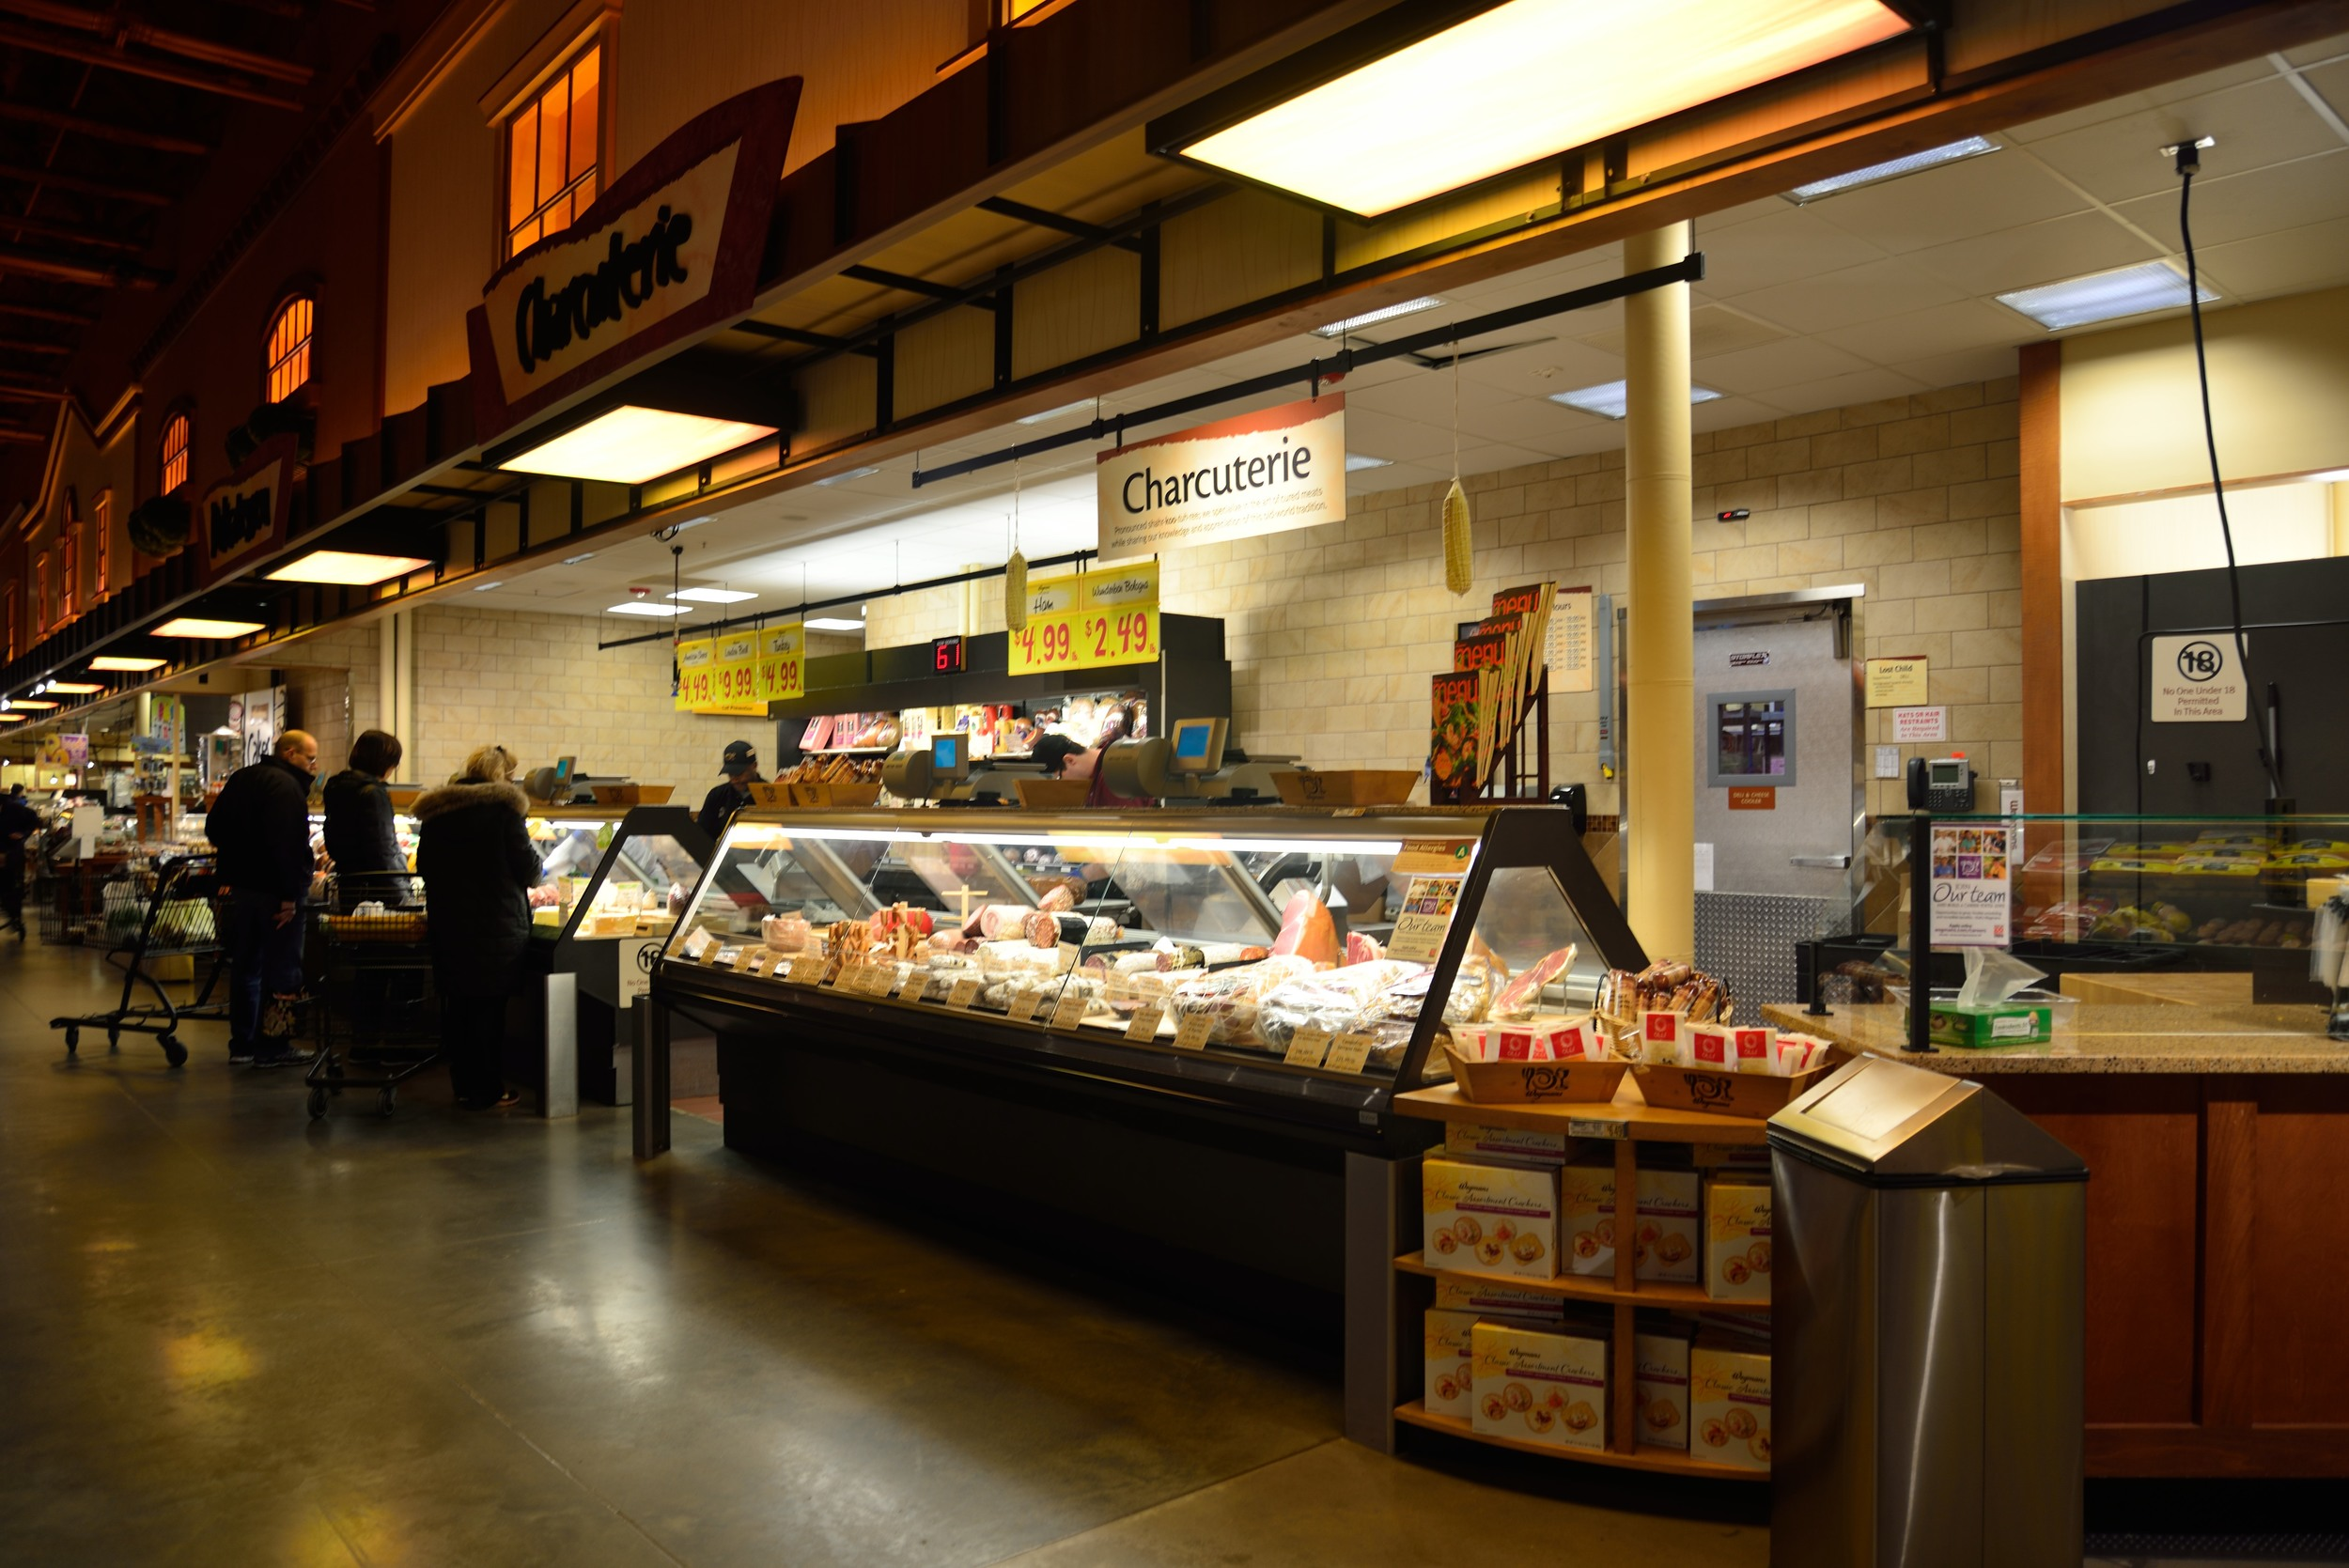 Entire Charcuterie Stand